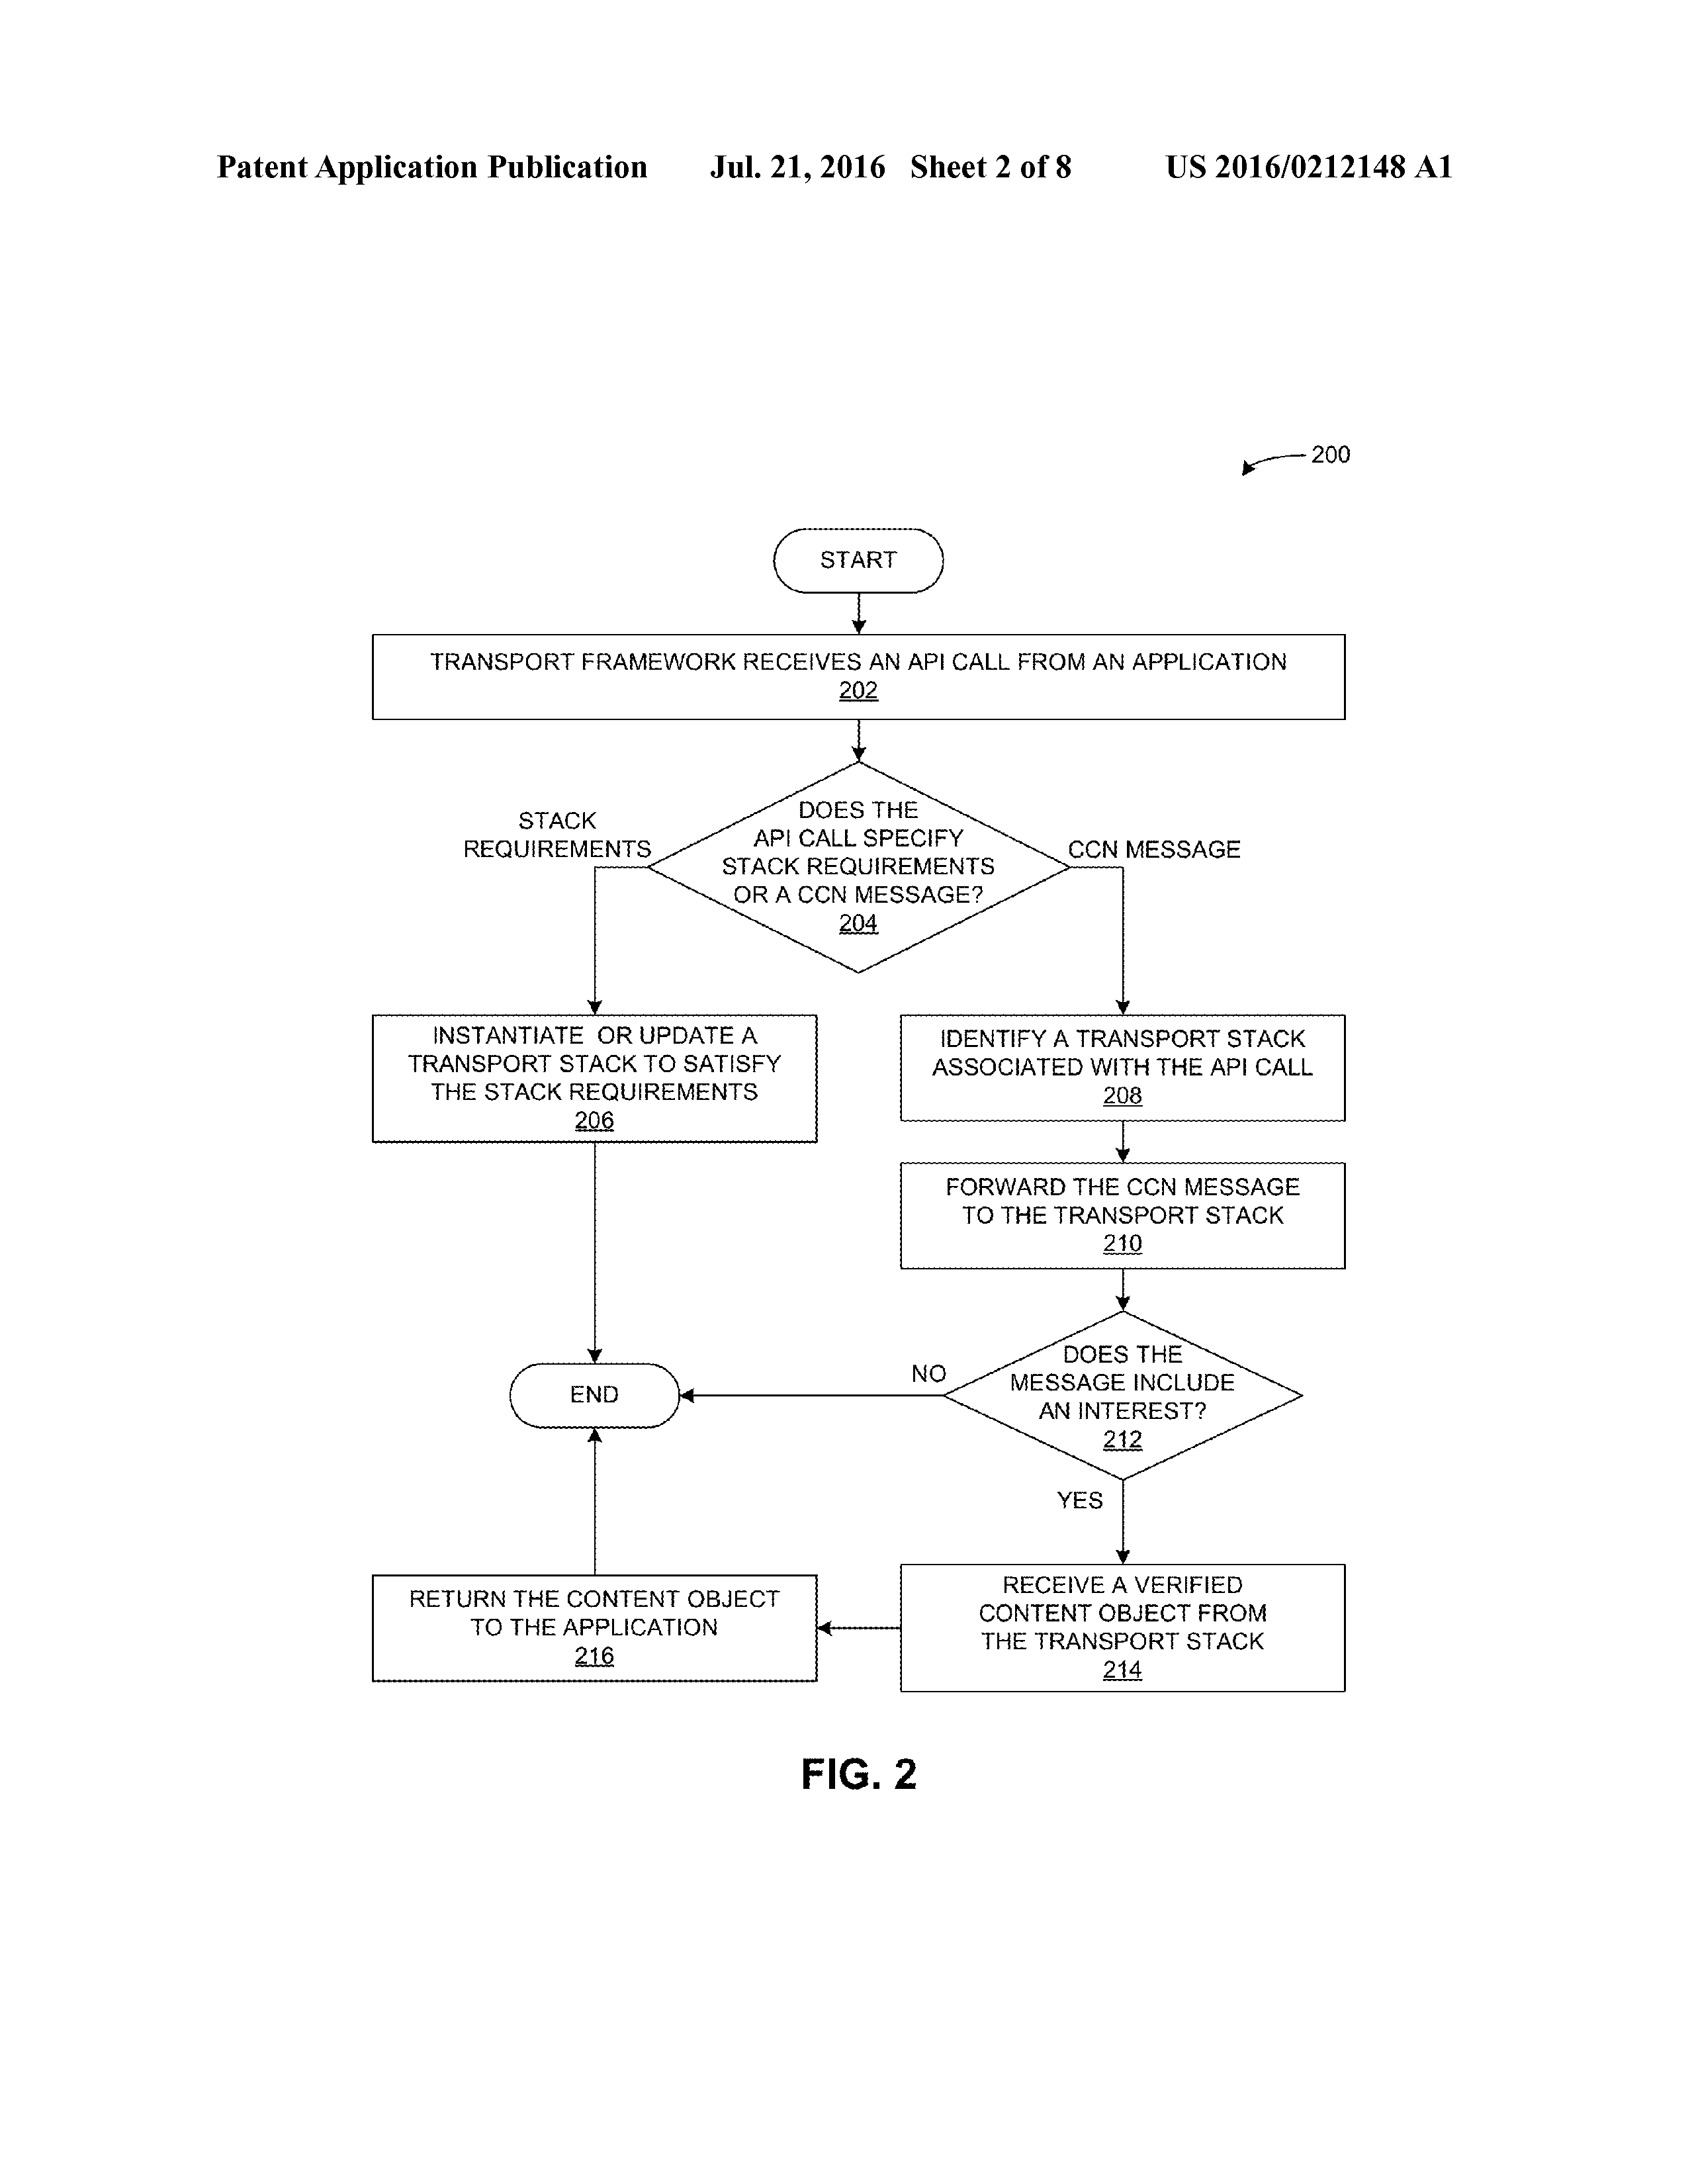 US 2016/0212148 A1 - Network-layer Application-specific Trust Model